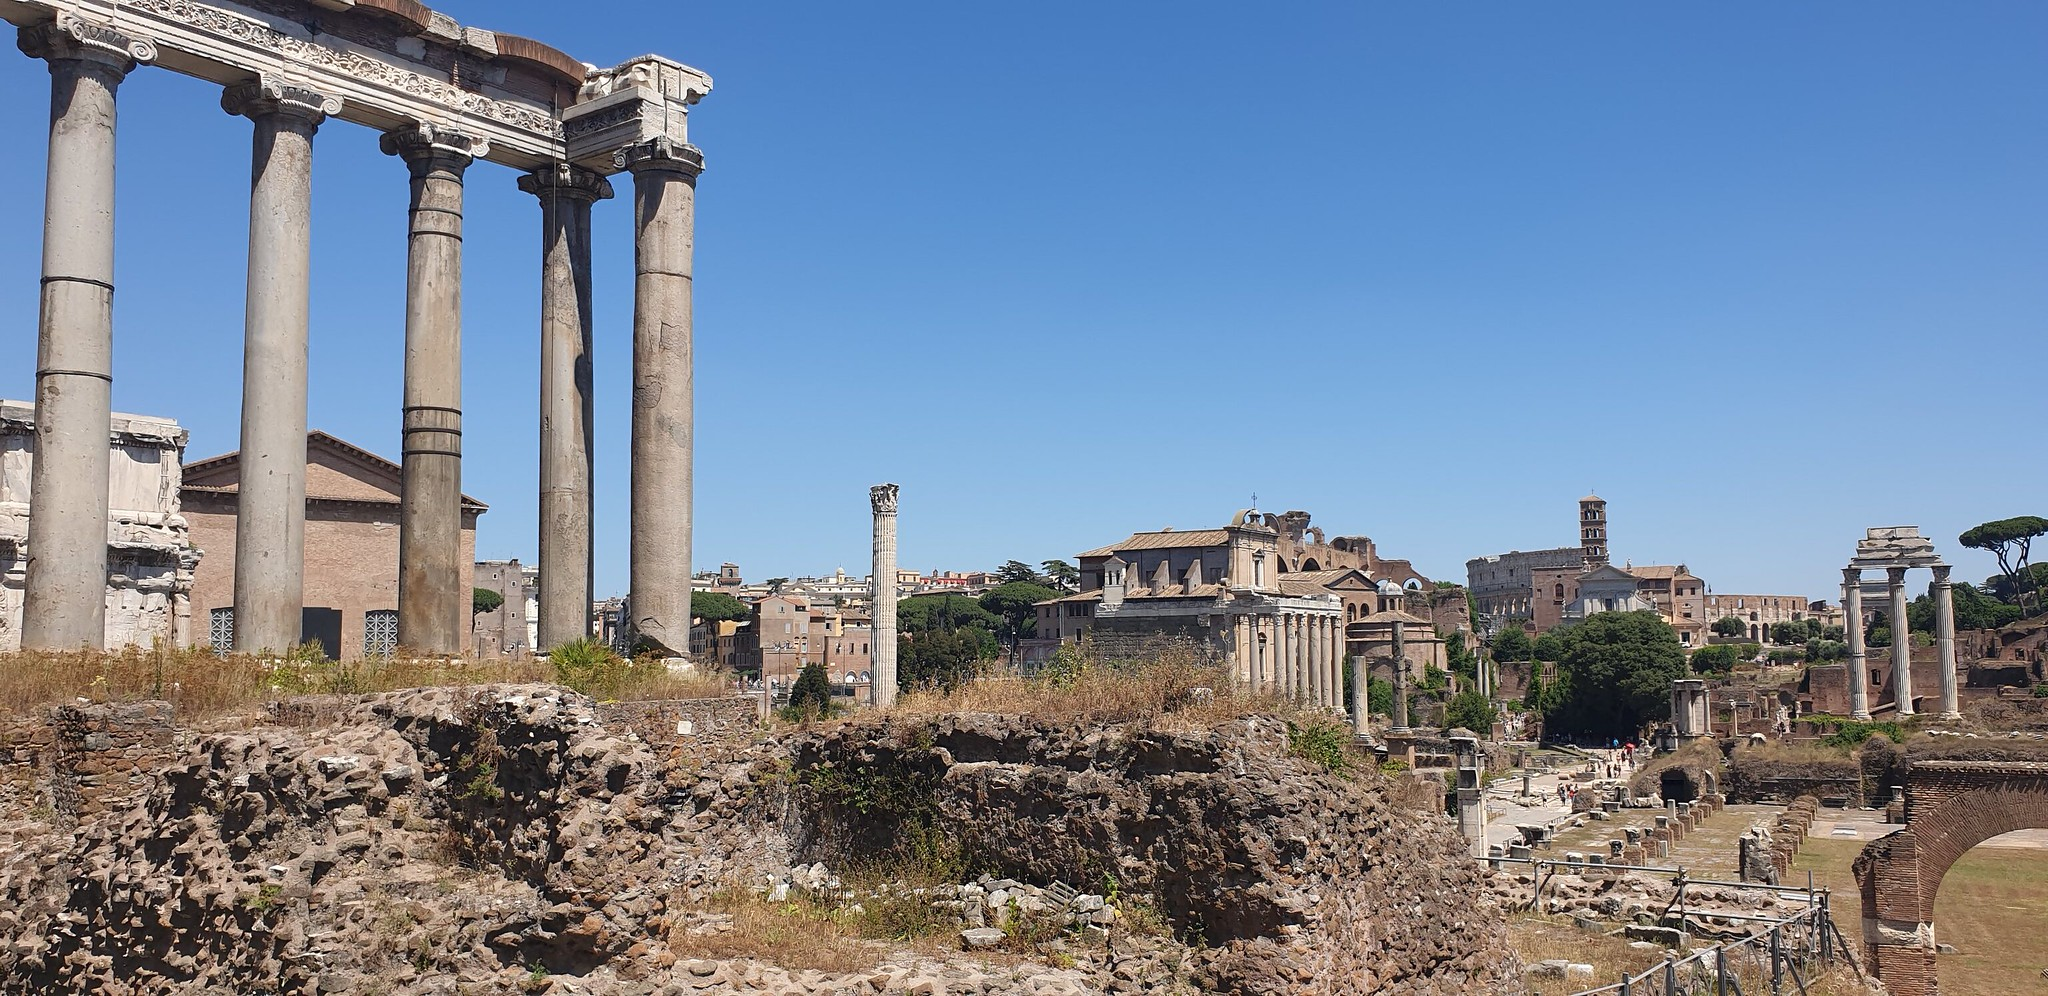 Forum Romanum (Roman Forum) – Republican Period